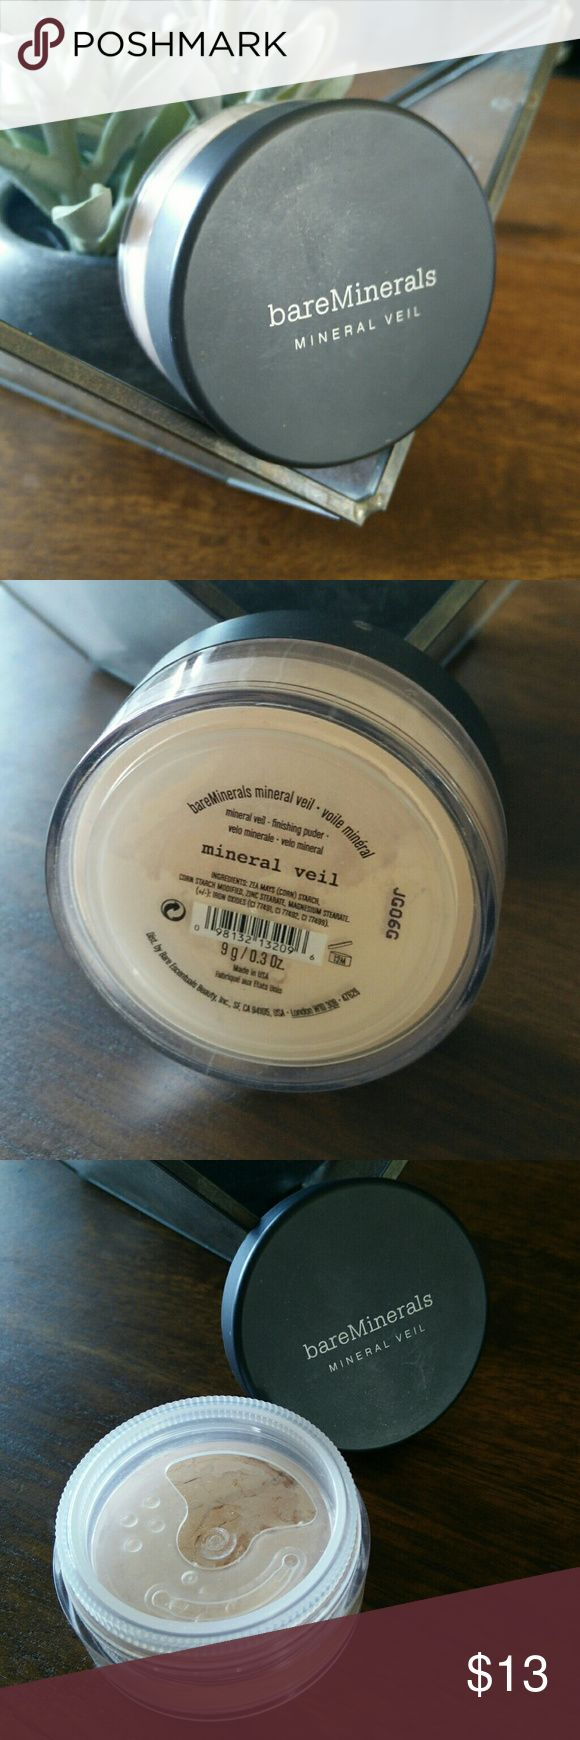 Mineral Veil finishing powder Only used a few times, this finishing power is magic! It helps absorb excess oil to keep you shine free all day, helps to your makeup, and helps to minimize the look of large pores. Comes in one skin friendly shade. Looks to be a peachy pinkish shade. Wear alone for light/sheer natural look, or on top of  foundation to finish off the look. bareMinerals Makeup Face Powder